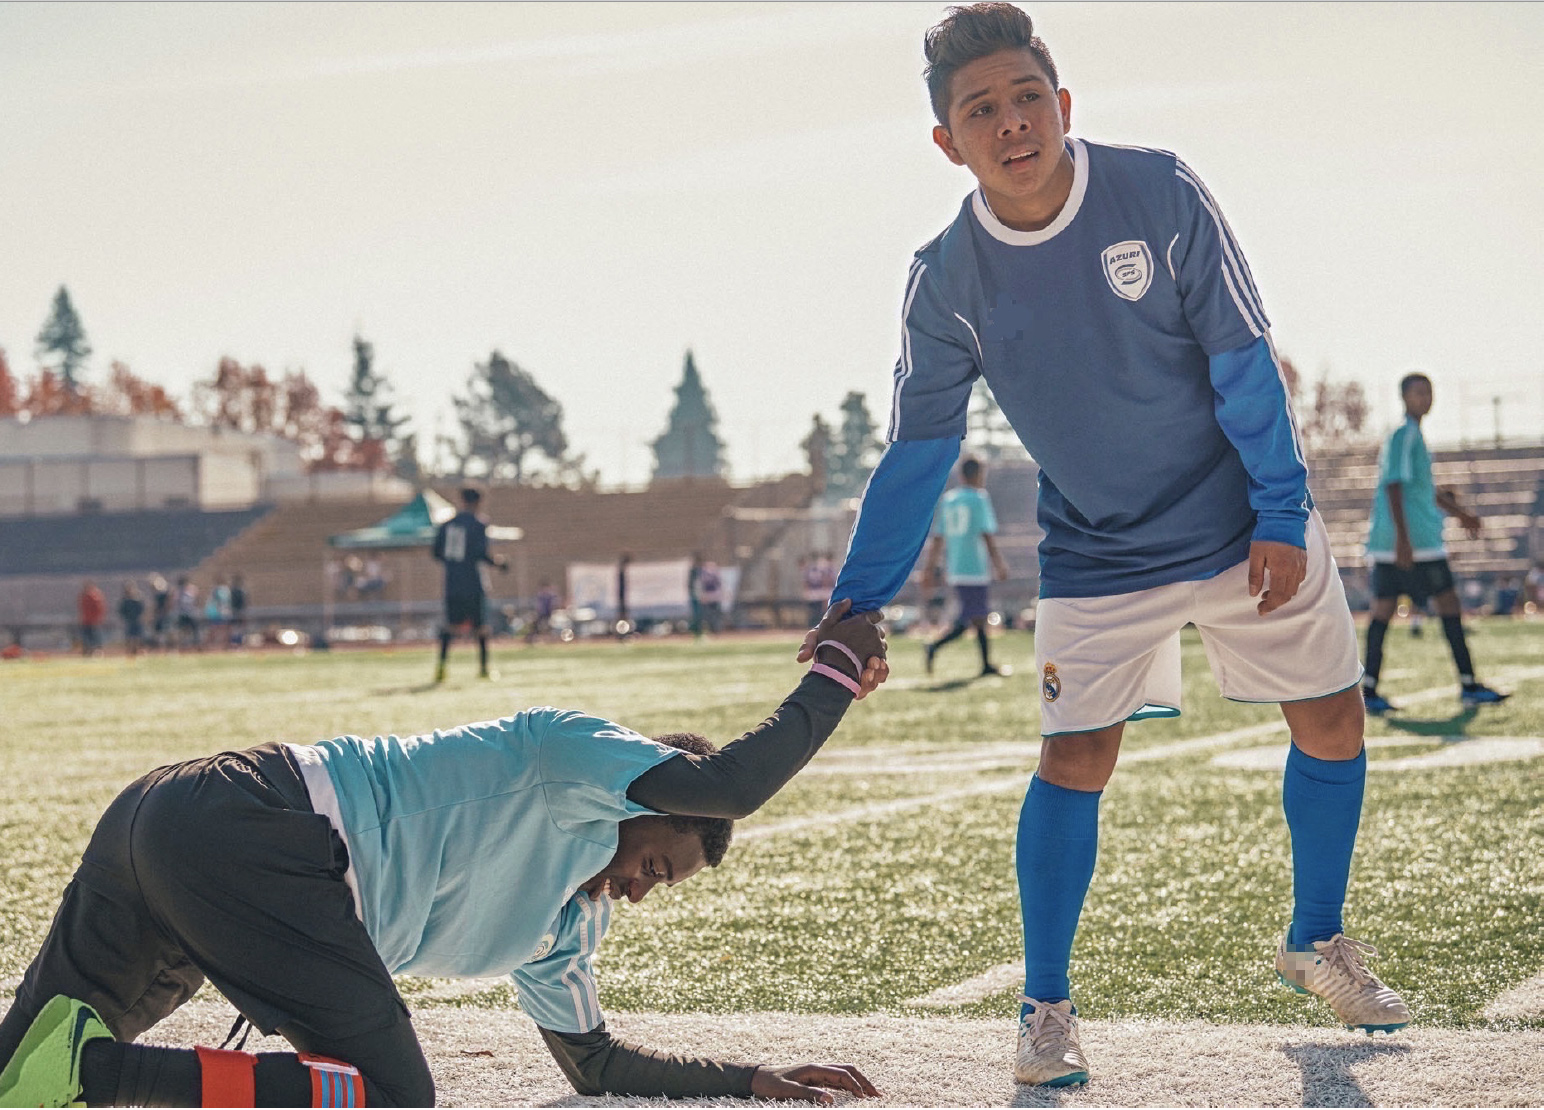 boy in soccer gear helping another boy stand up from where he's fallen on the soccer field